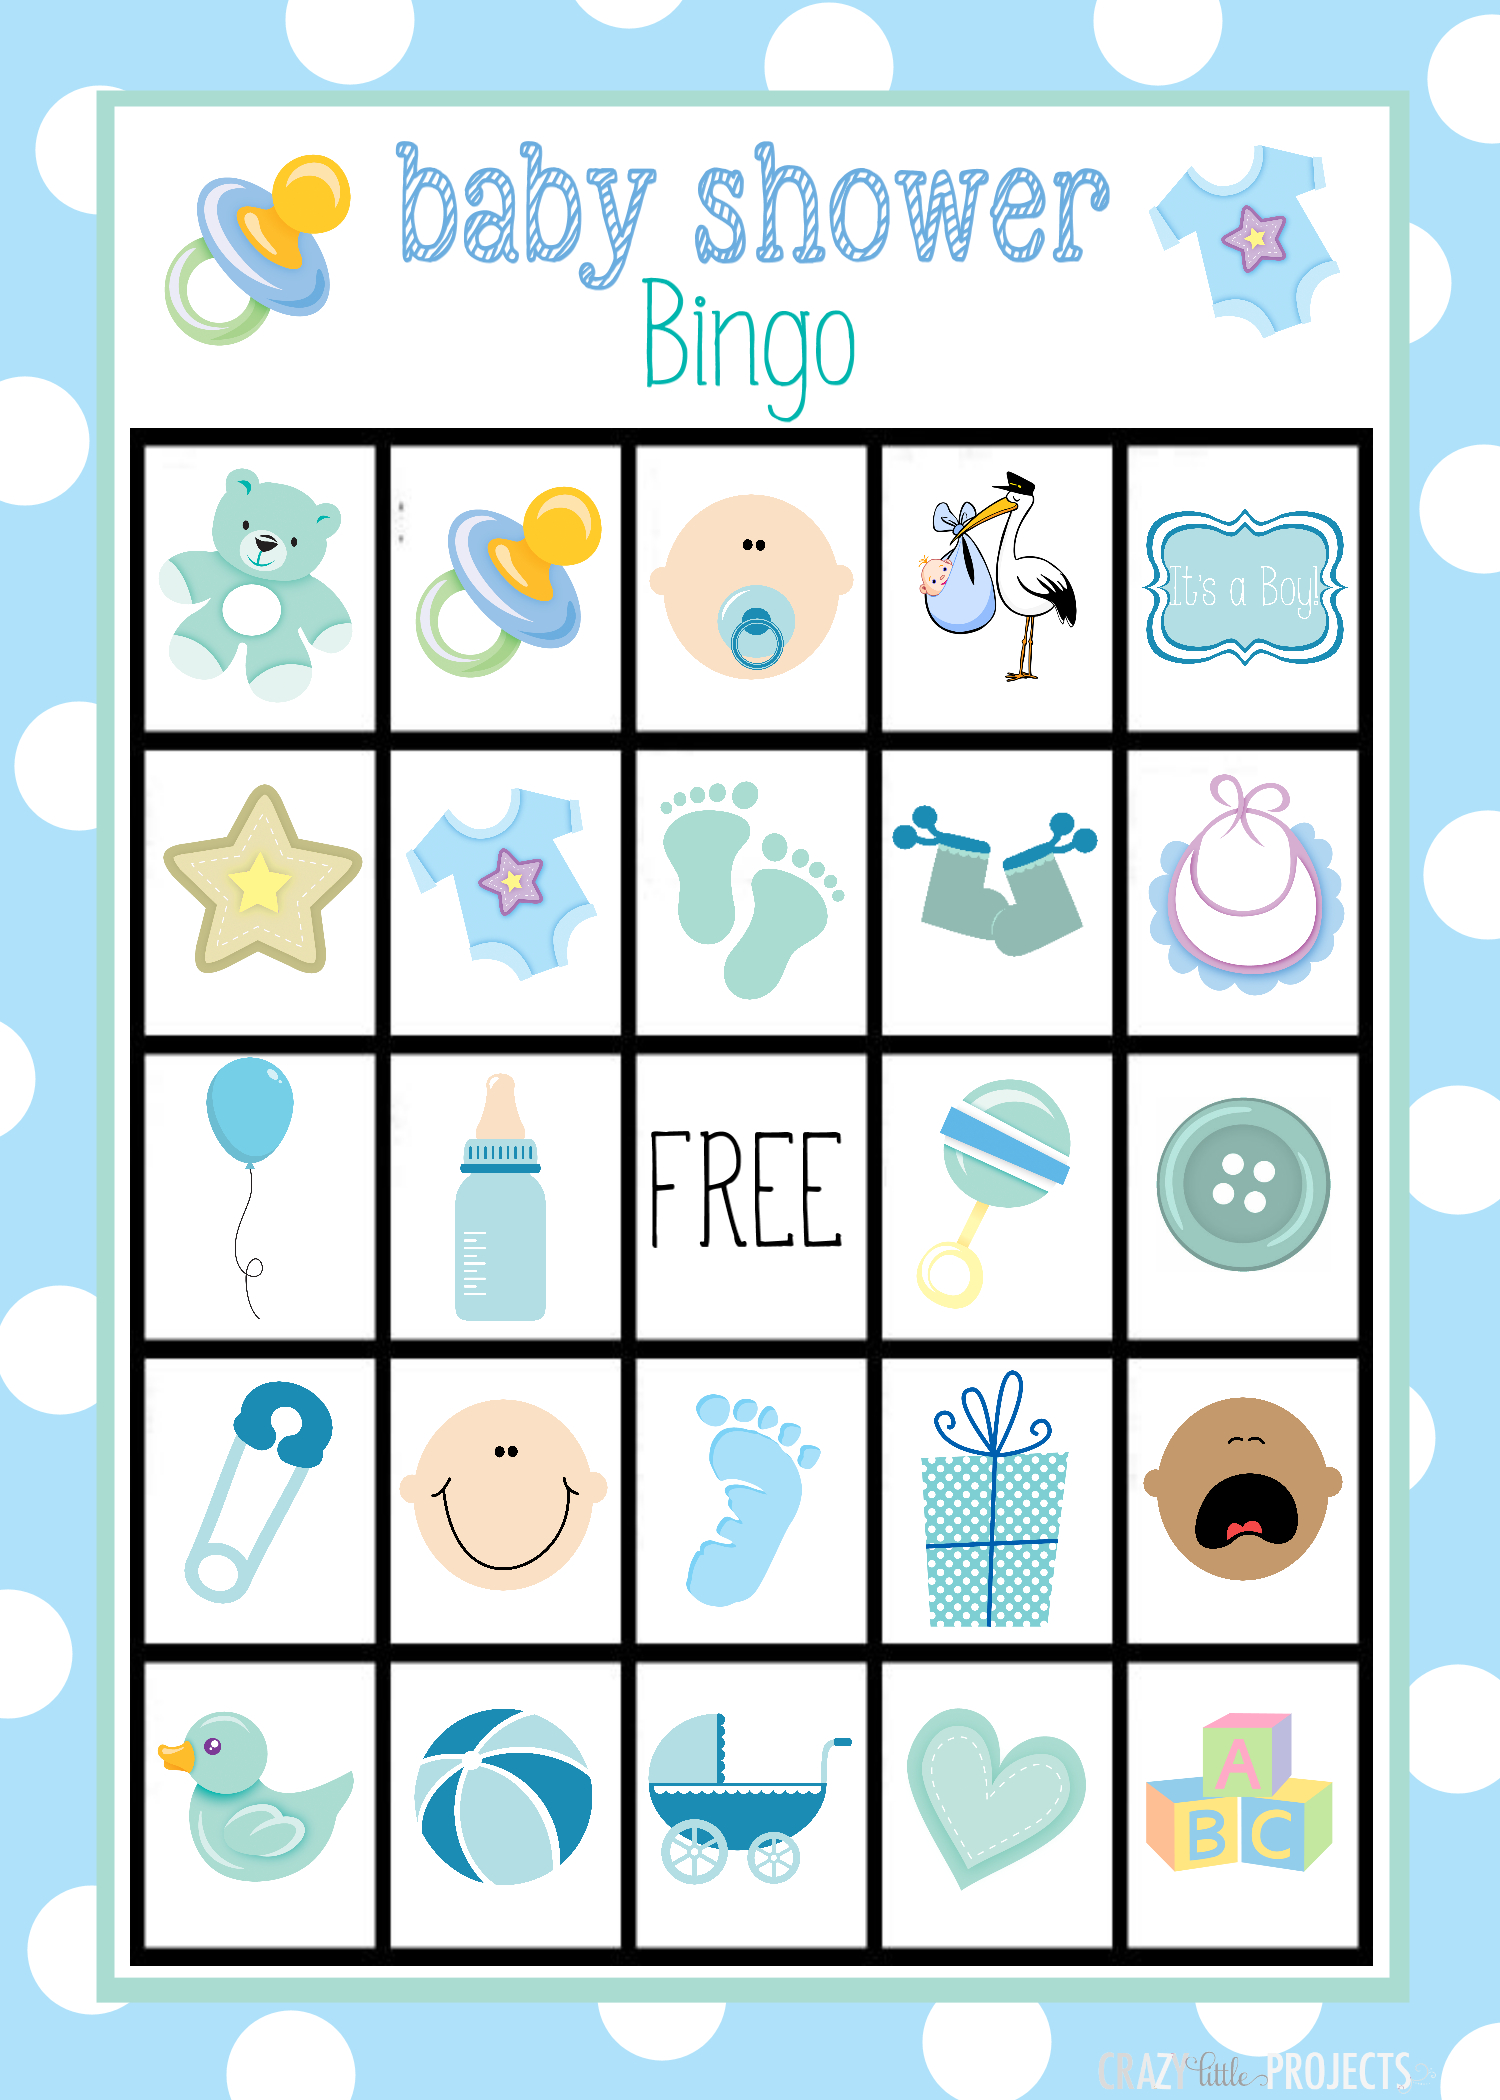 Baby Shower Bingo Cards - Printable Baby Shower Bingo Games Free